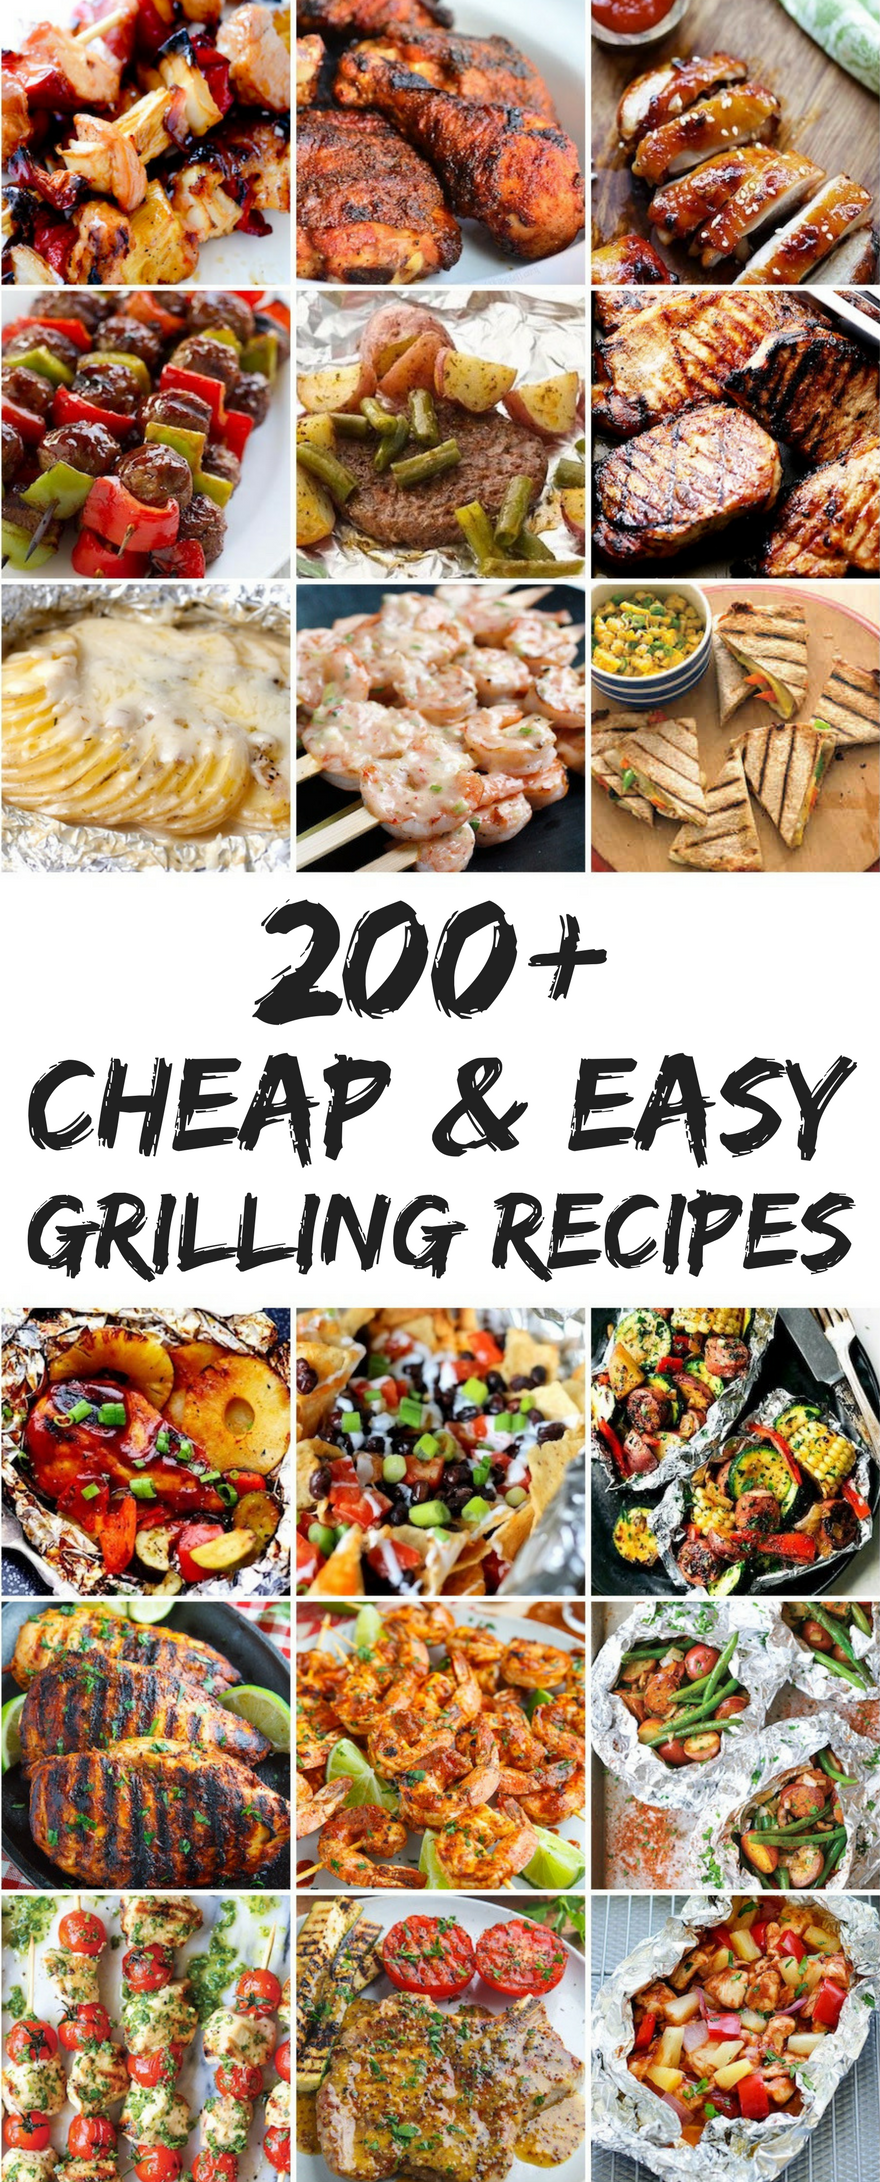 200 cheap and easy grilling recipes prudent penny pincher grilling recipes forumfinder